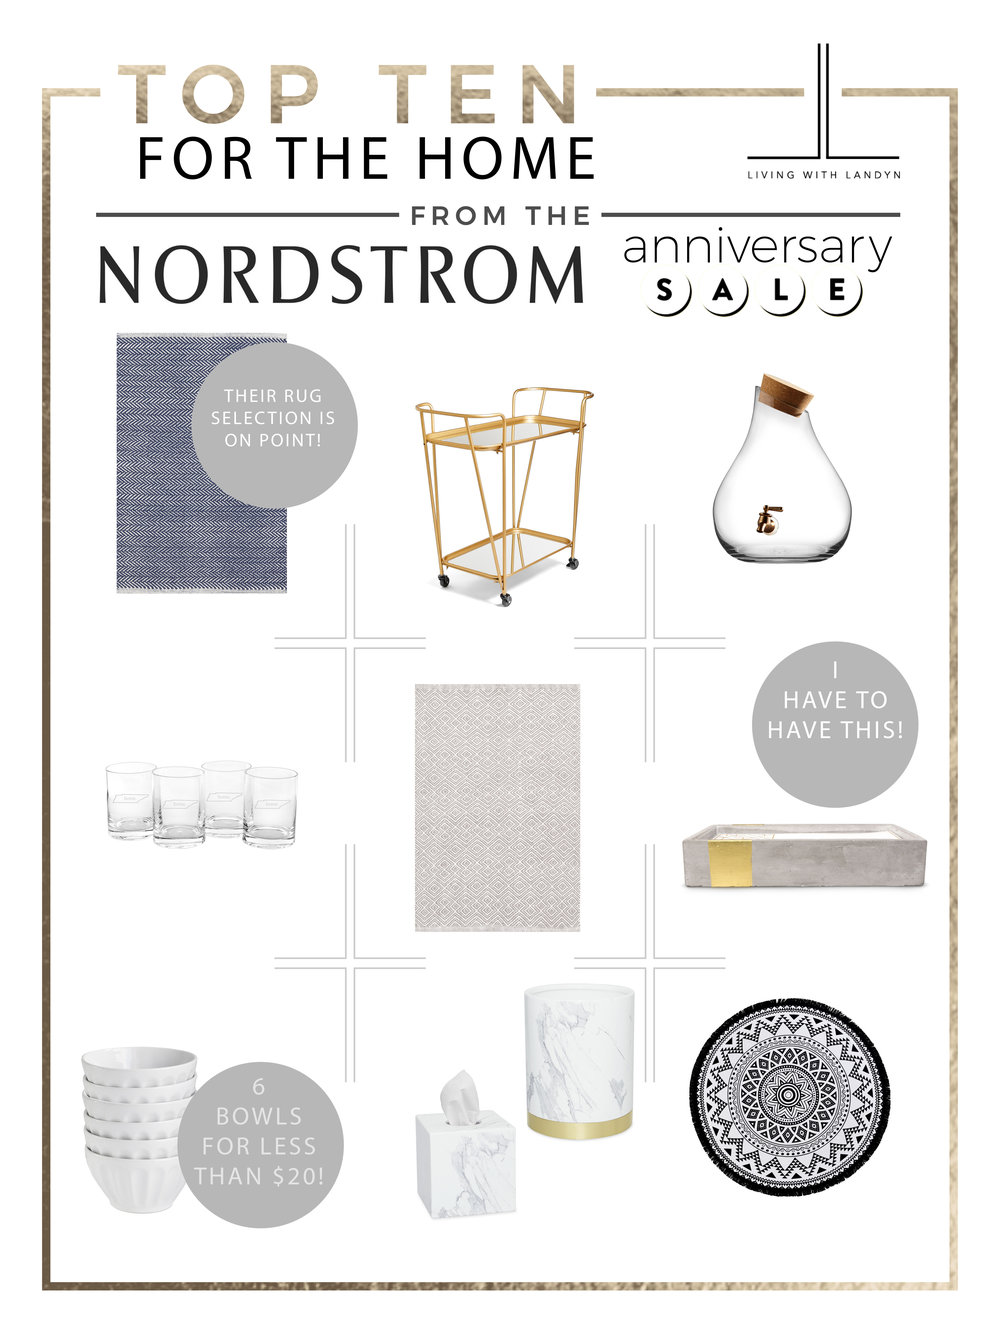 TOP HOME PICKS NORDSTROM ANNIVERSARY SALE